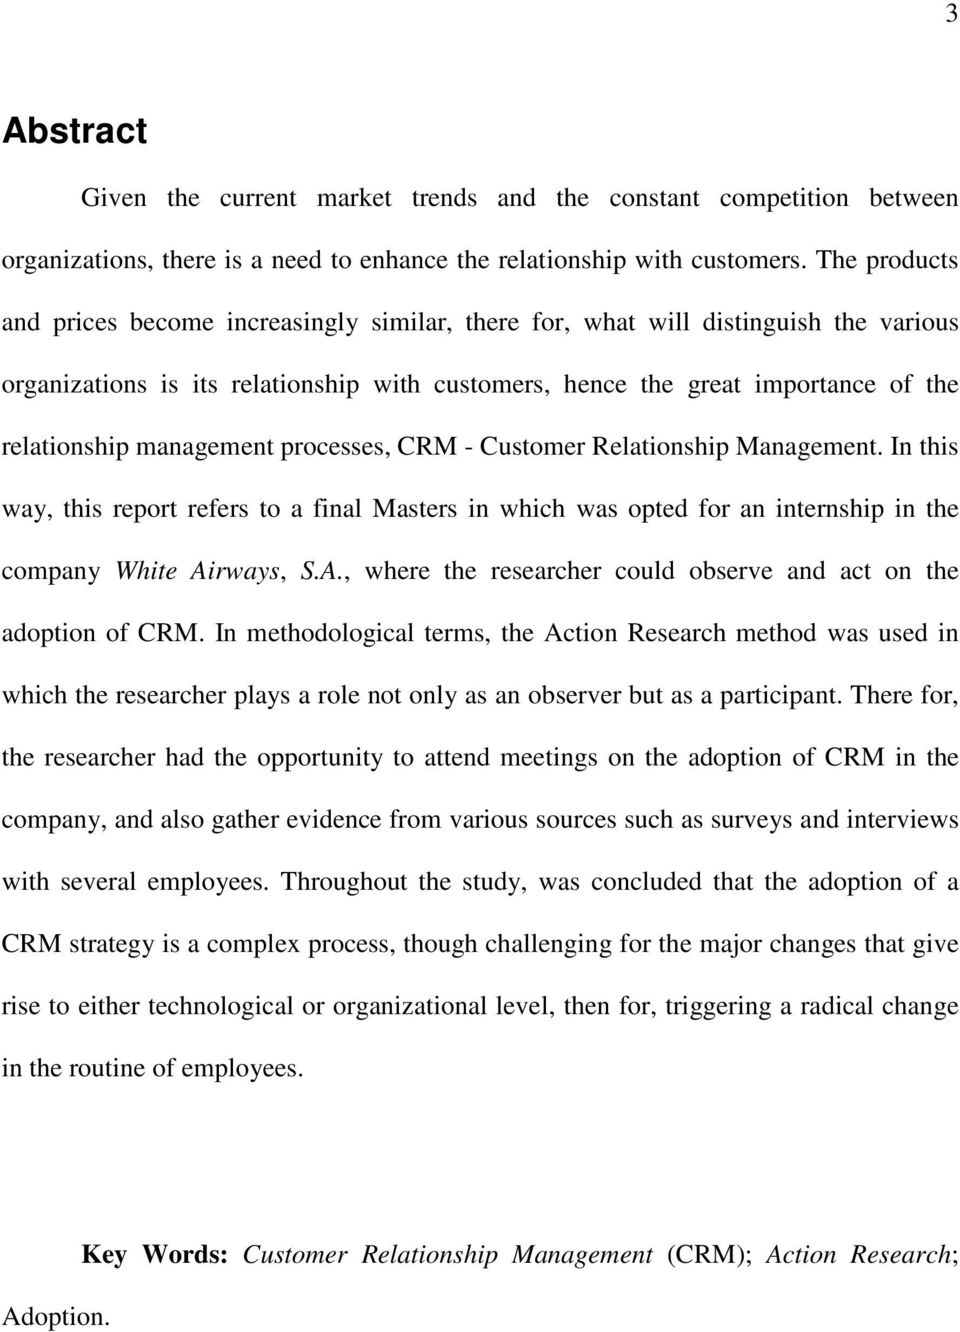 management processes, CRM - Customer Relationship Management. In this way, this report refers to a final Masters in which was opted for an internship in the company White Ai